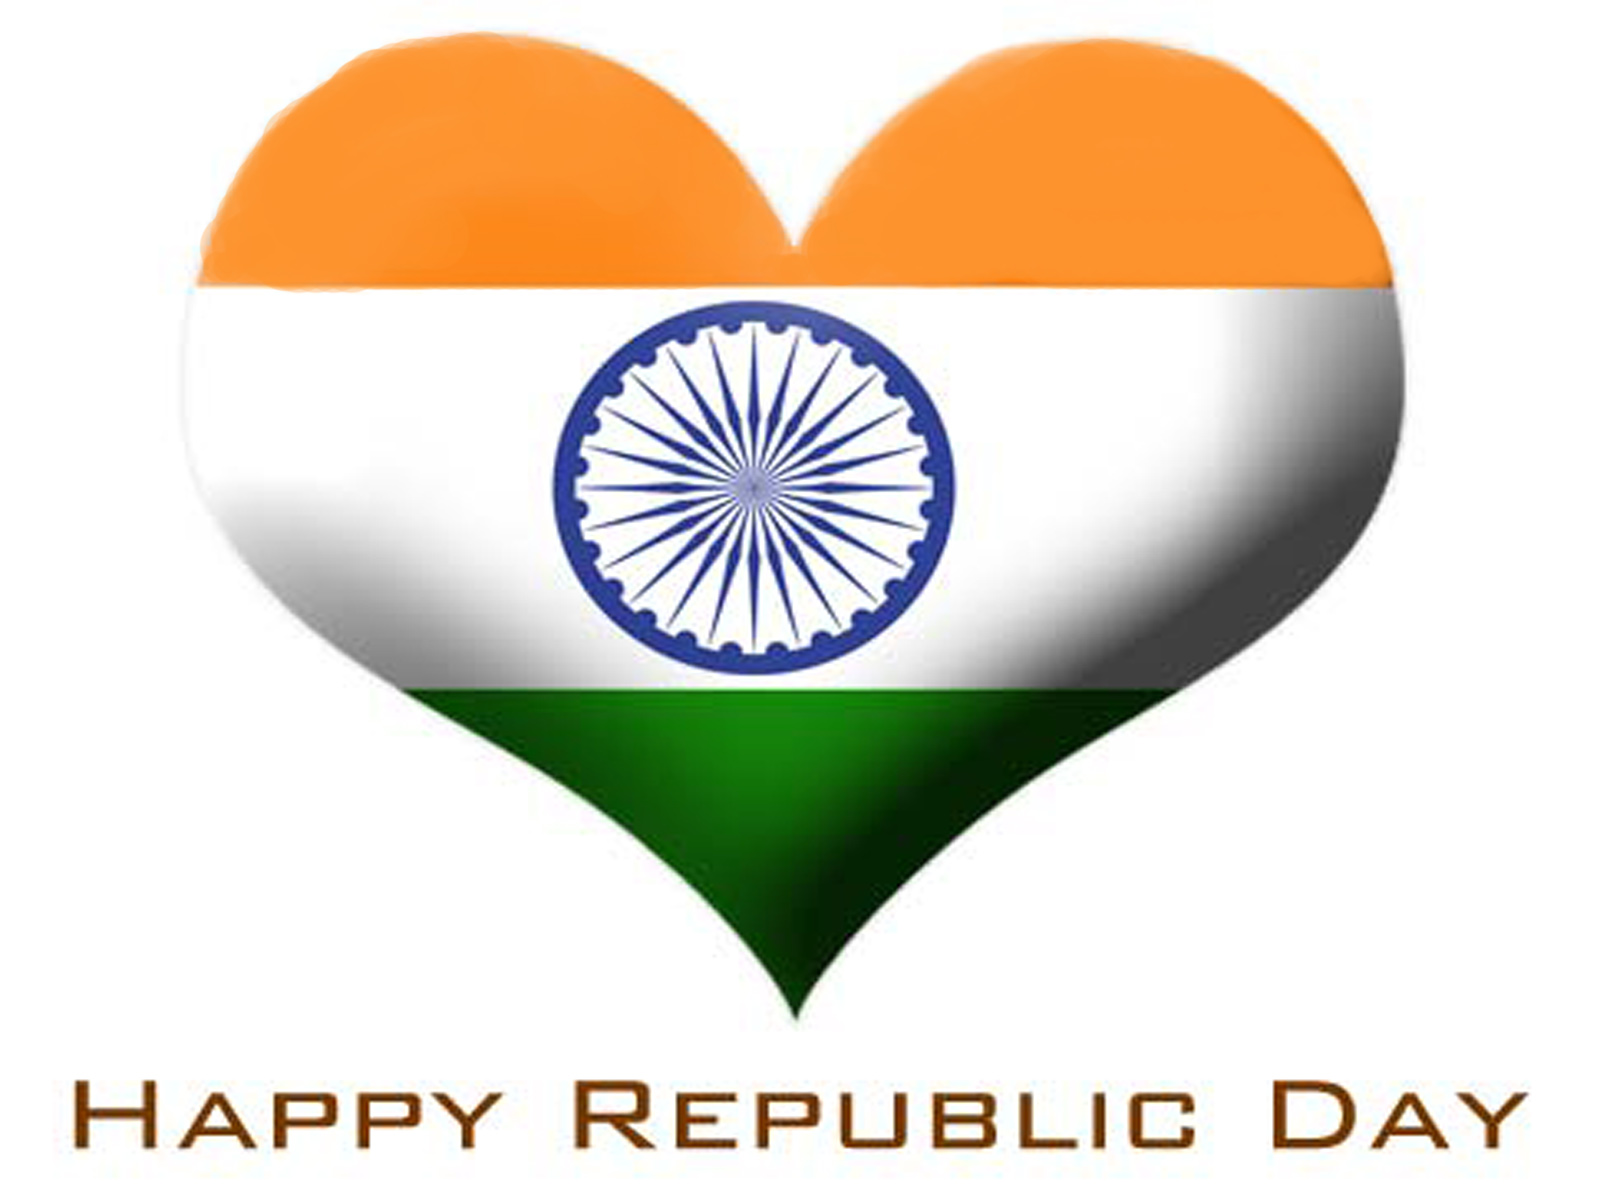 republic day essay for children students and teachers republic day essay for children and students